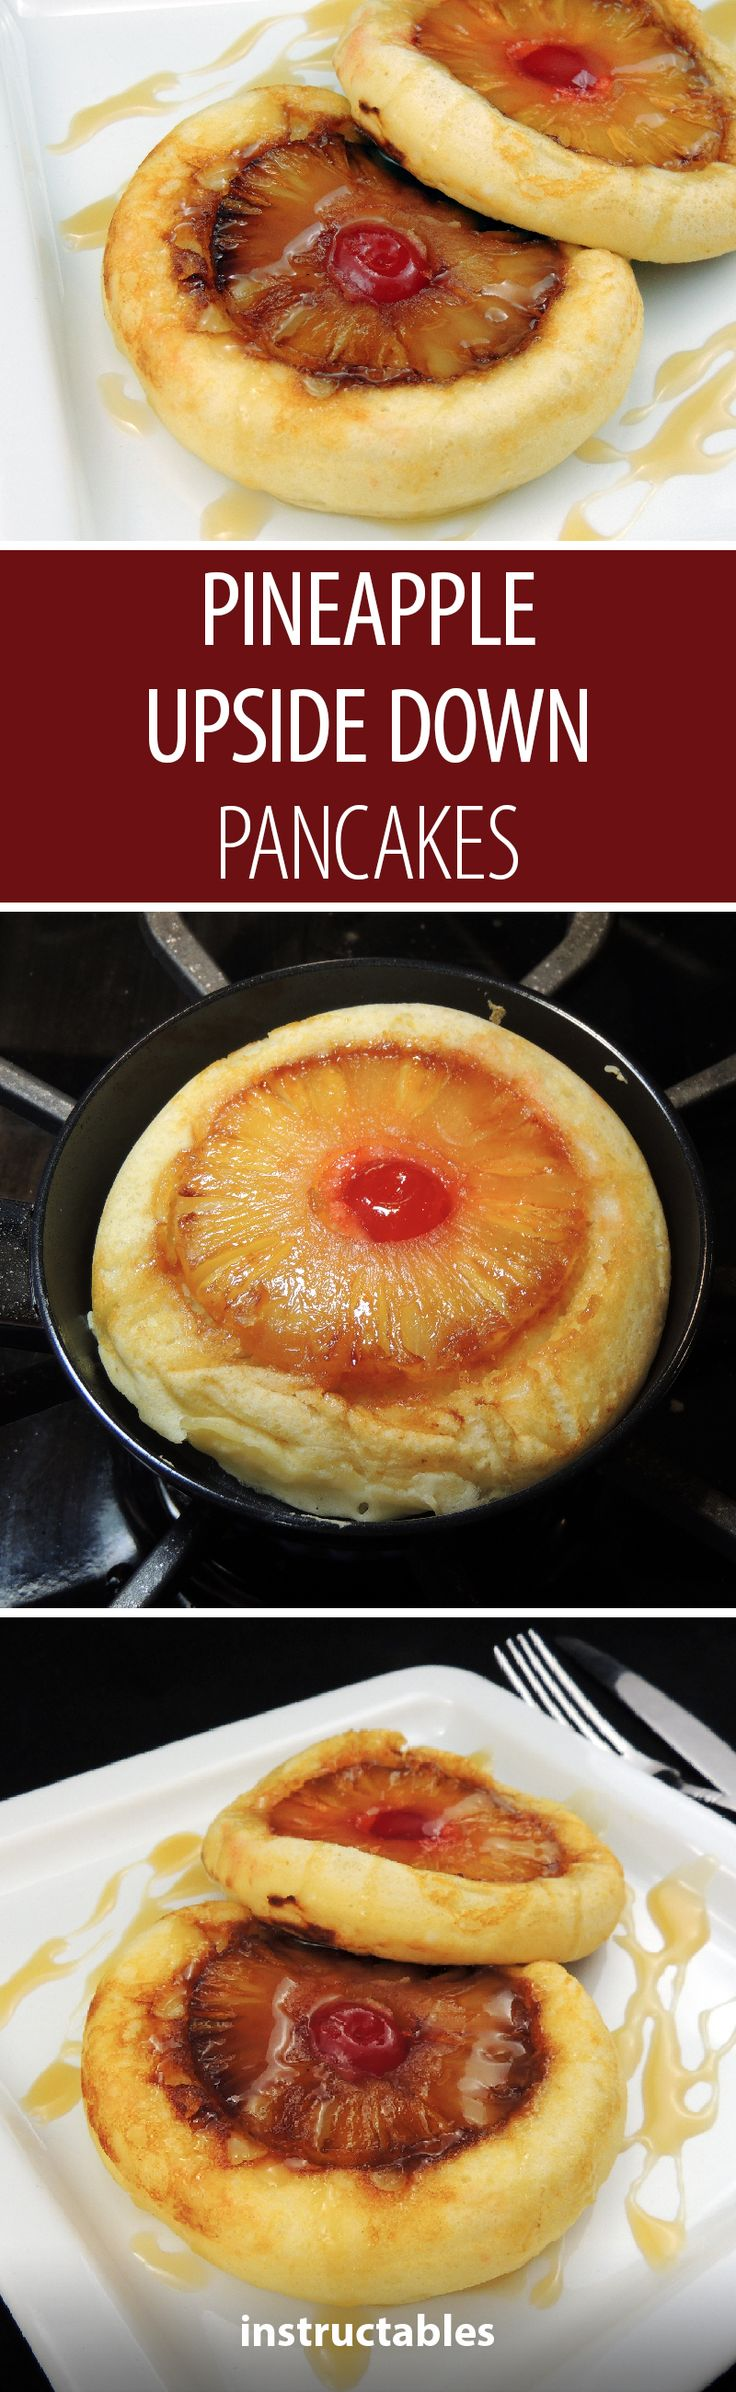 Tasty pineapple upside down pancakes that are also gluten free!